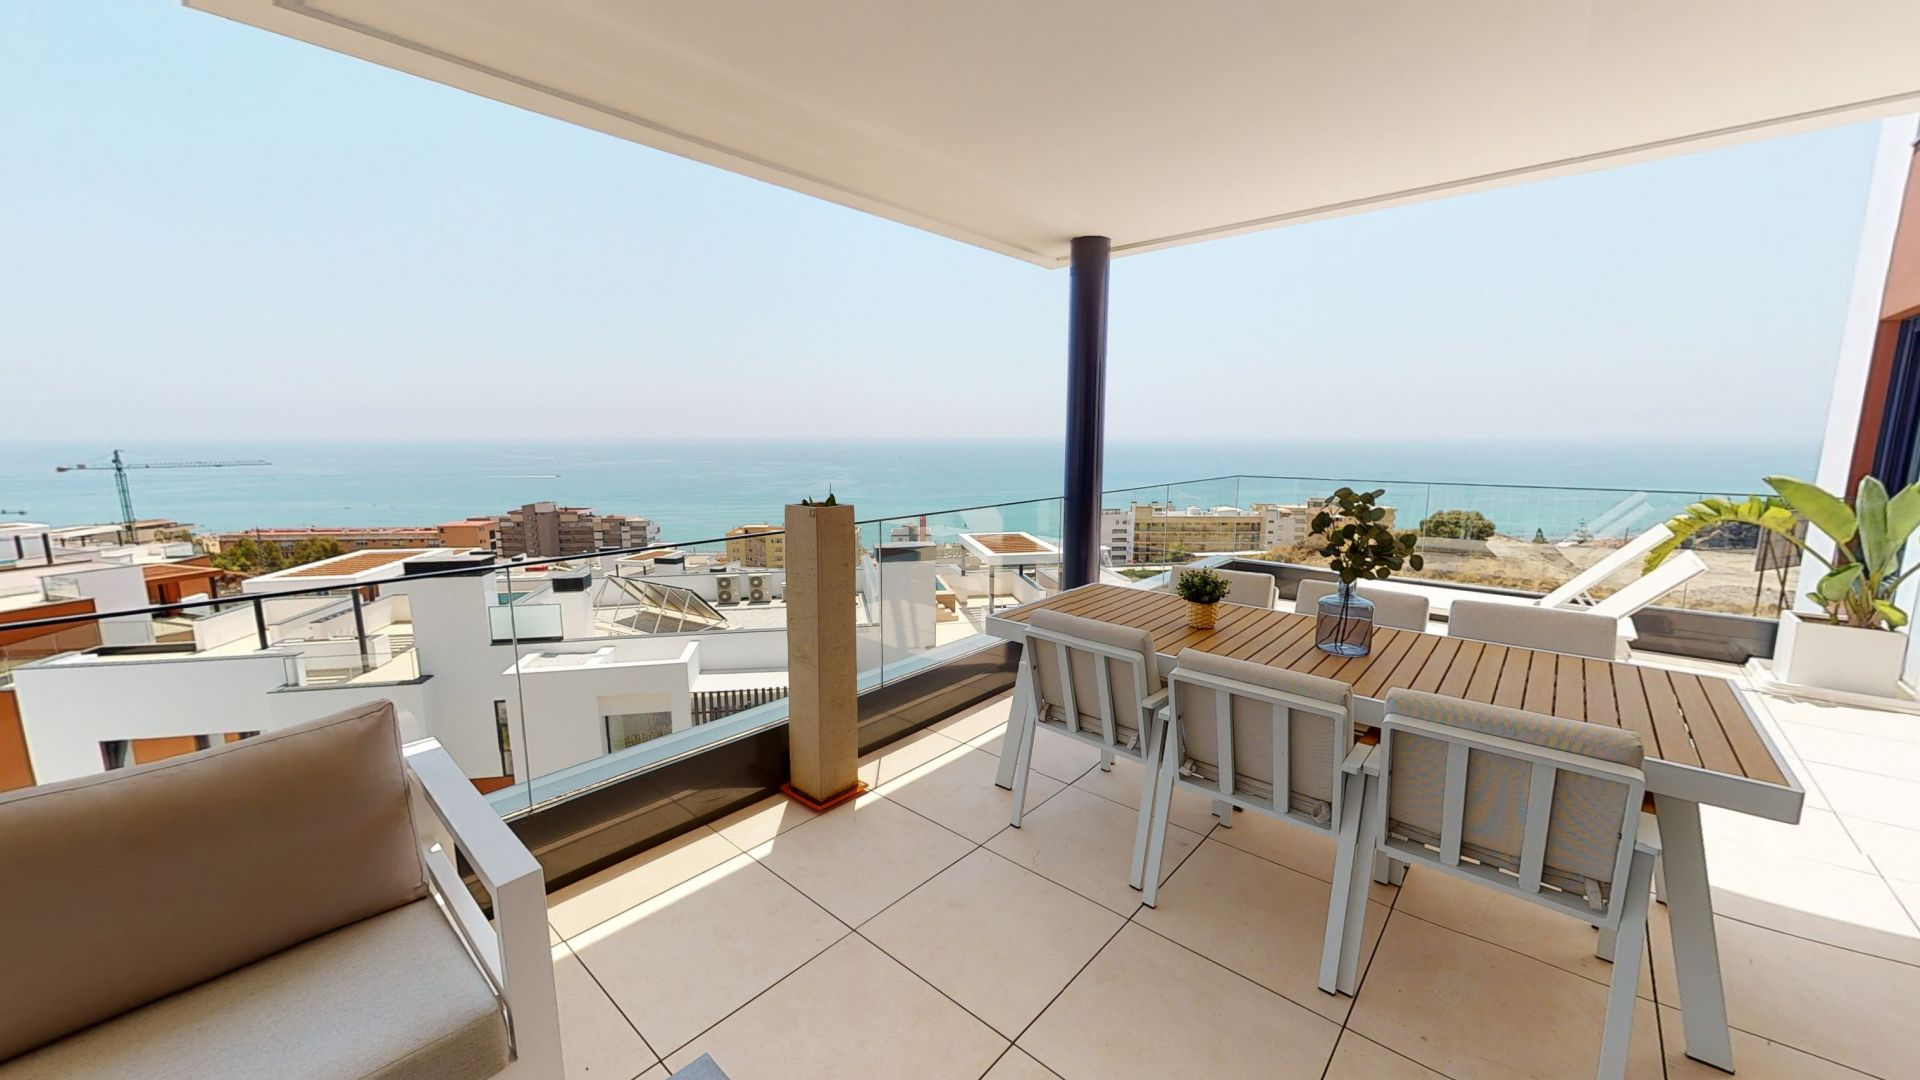 Stunning apartment for sale in Fuengirola | Christie's International Real Estate